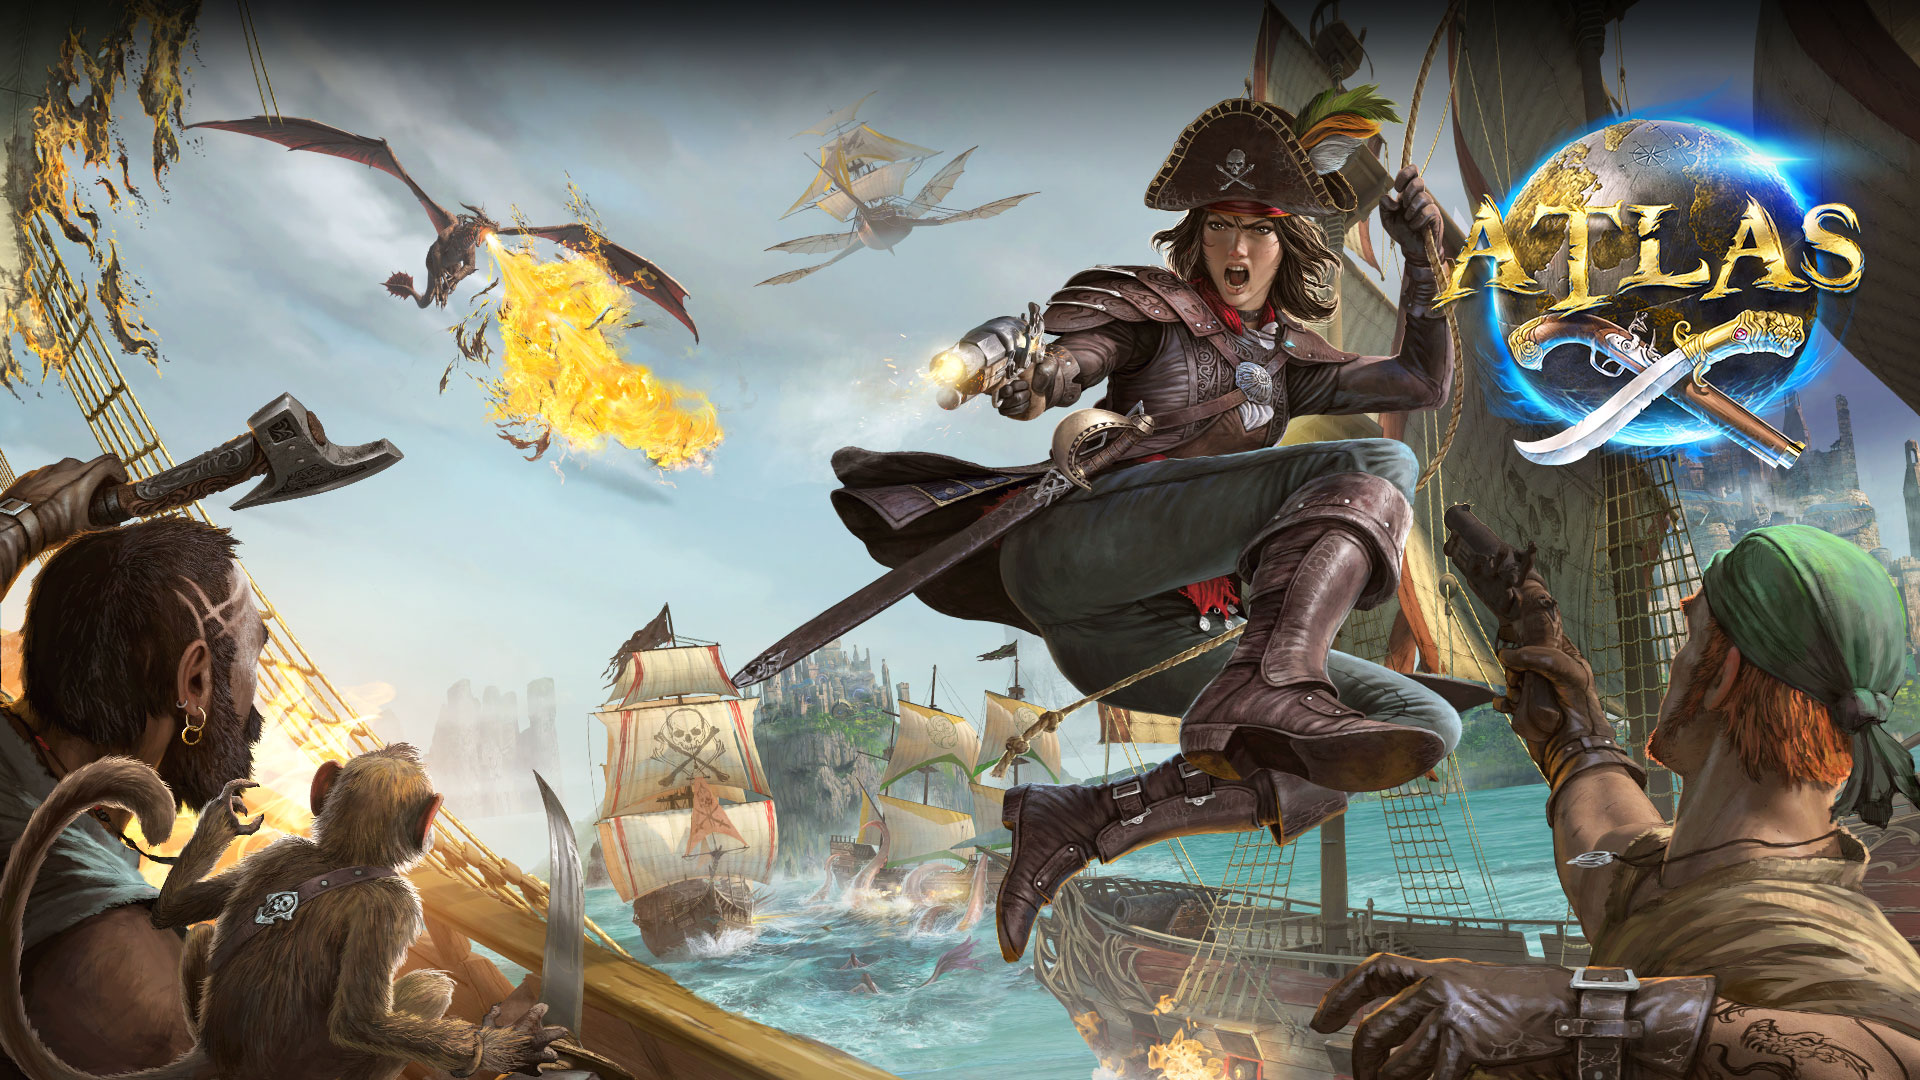 Atlas logo, female character on a rope attacking two other characters with weapons and a monkey, with a flying ship and fire breathing dragon in the background